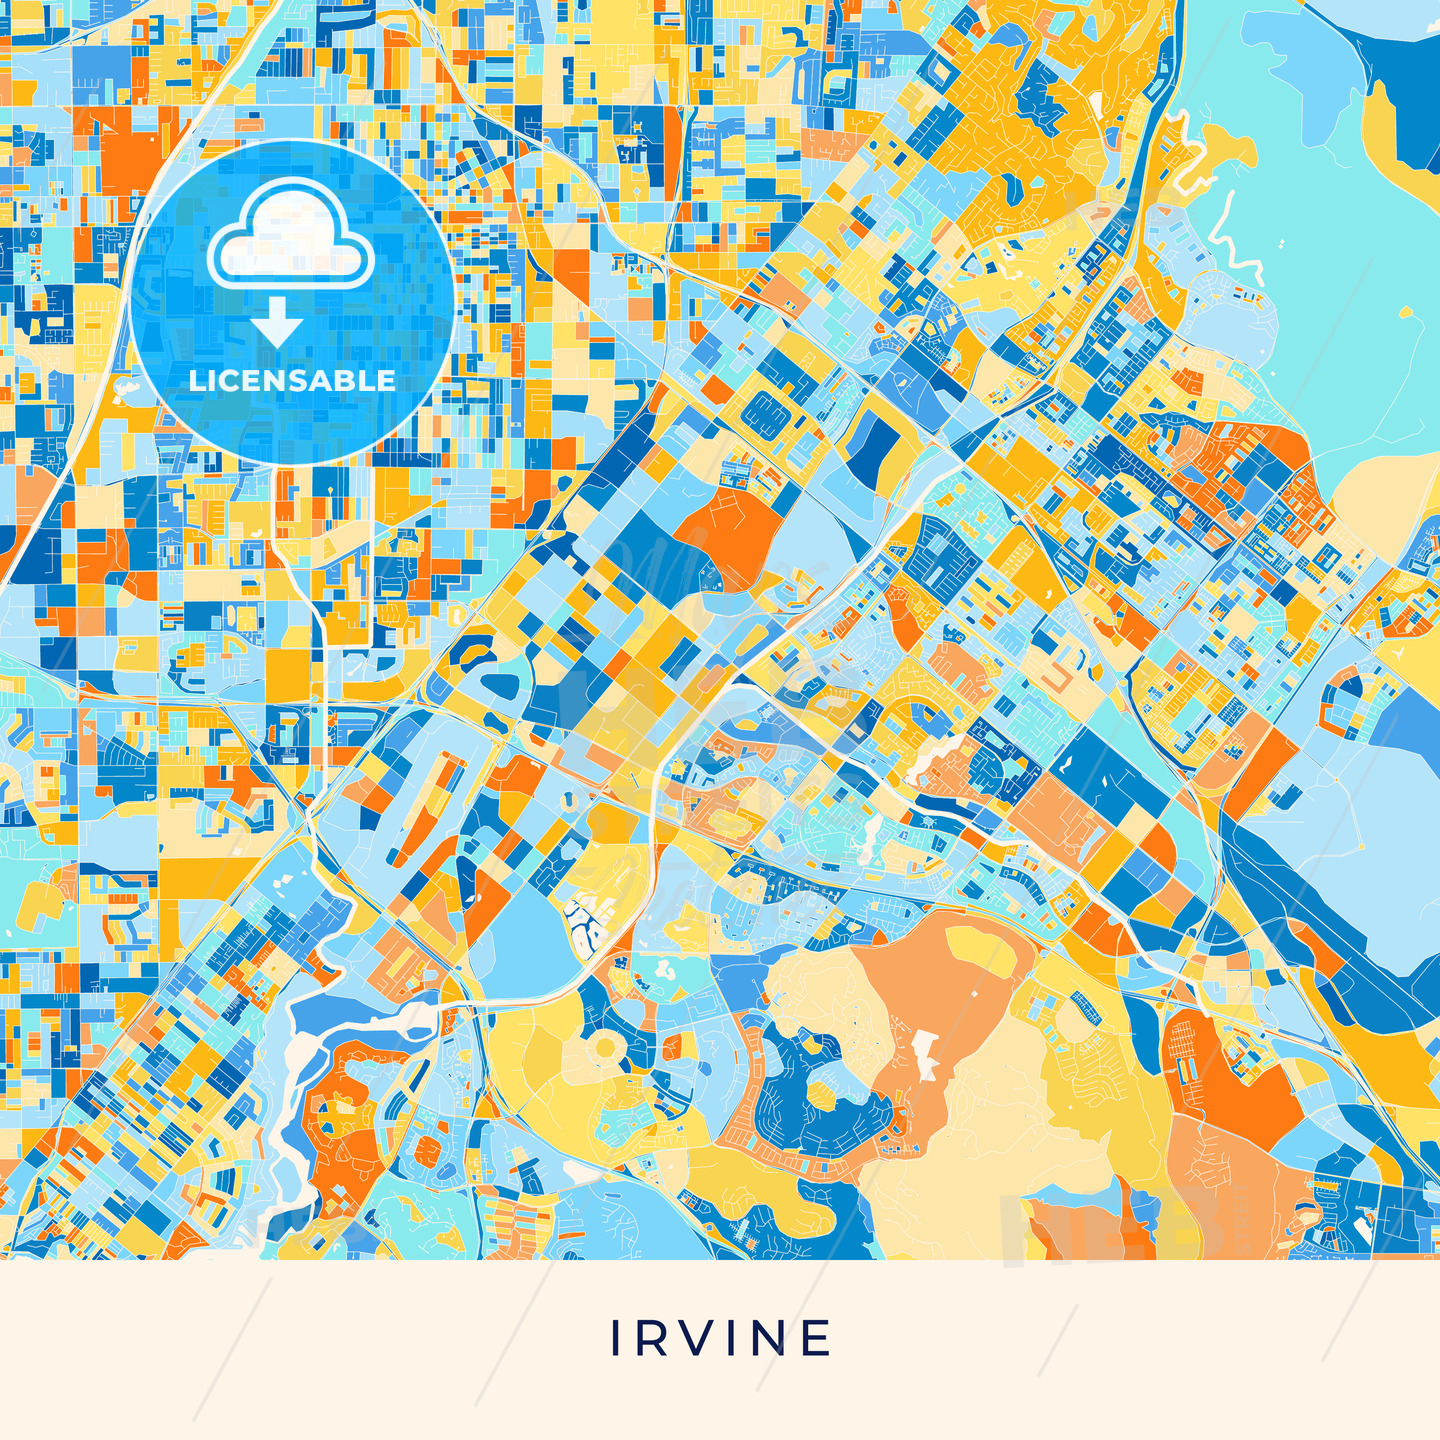 Irvine colorful map poster template